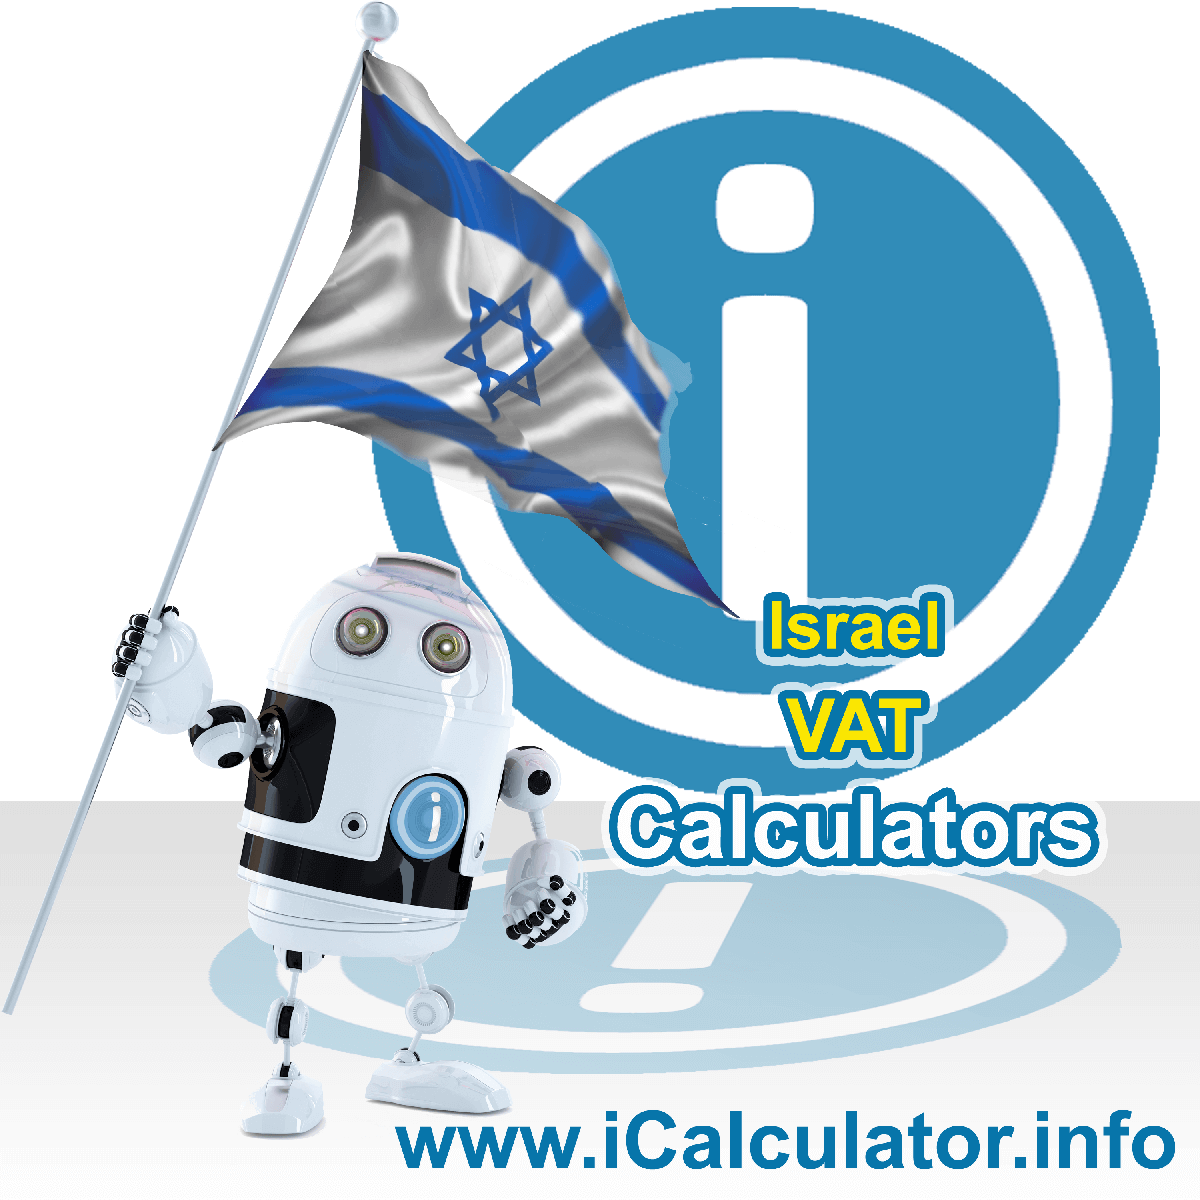 Israel VAT Calculator. This image shows the Israel flag and information relating to the VAT formula used for calculating Value Added Tax in Israel using the Israel VAT Calculator in 2020